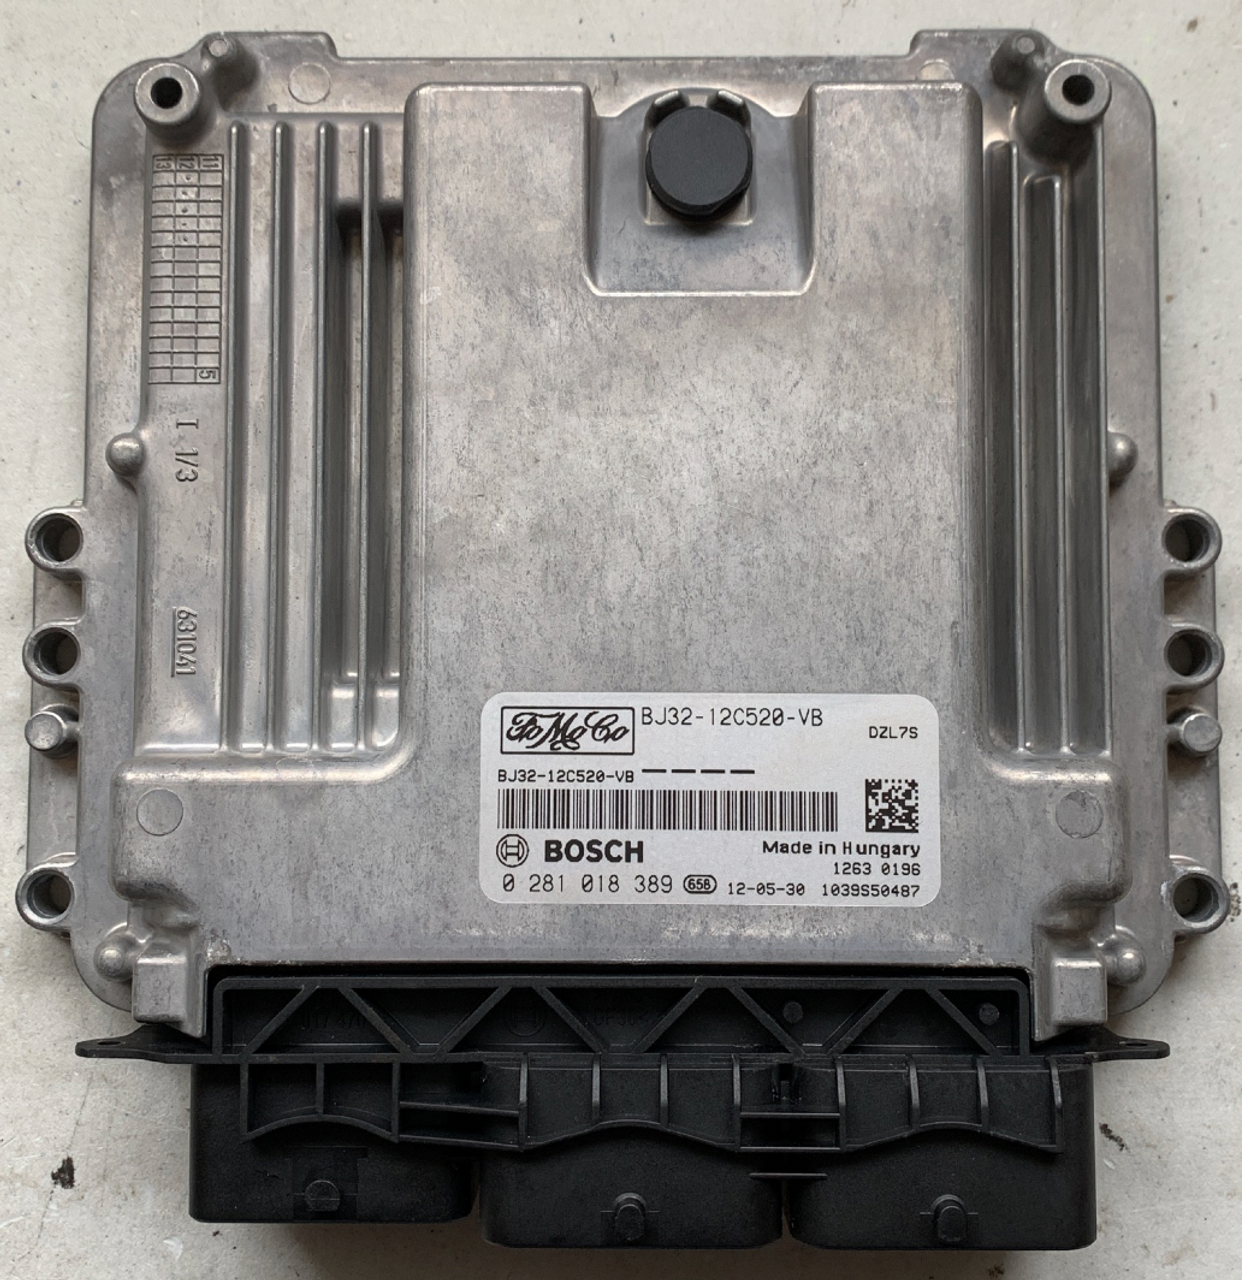 Plug & Play Bosch Engine ECU, Range Rover Evoque 2 2, 0281018389, 0 281 018  389, BJ32-12C520-VB